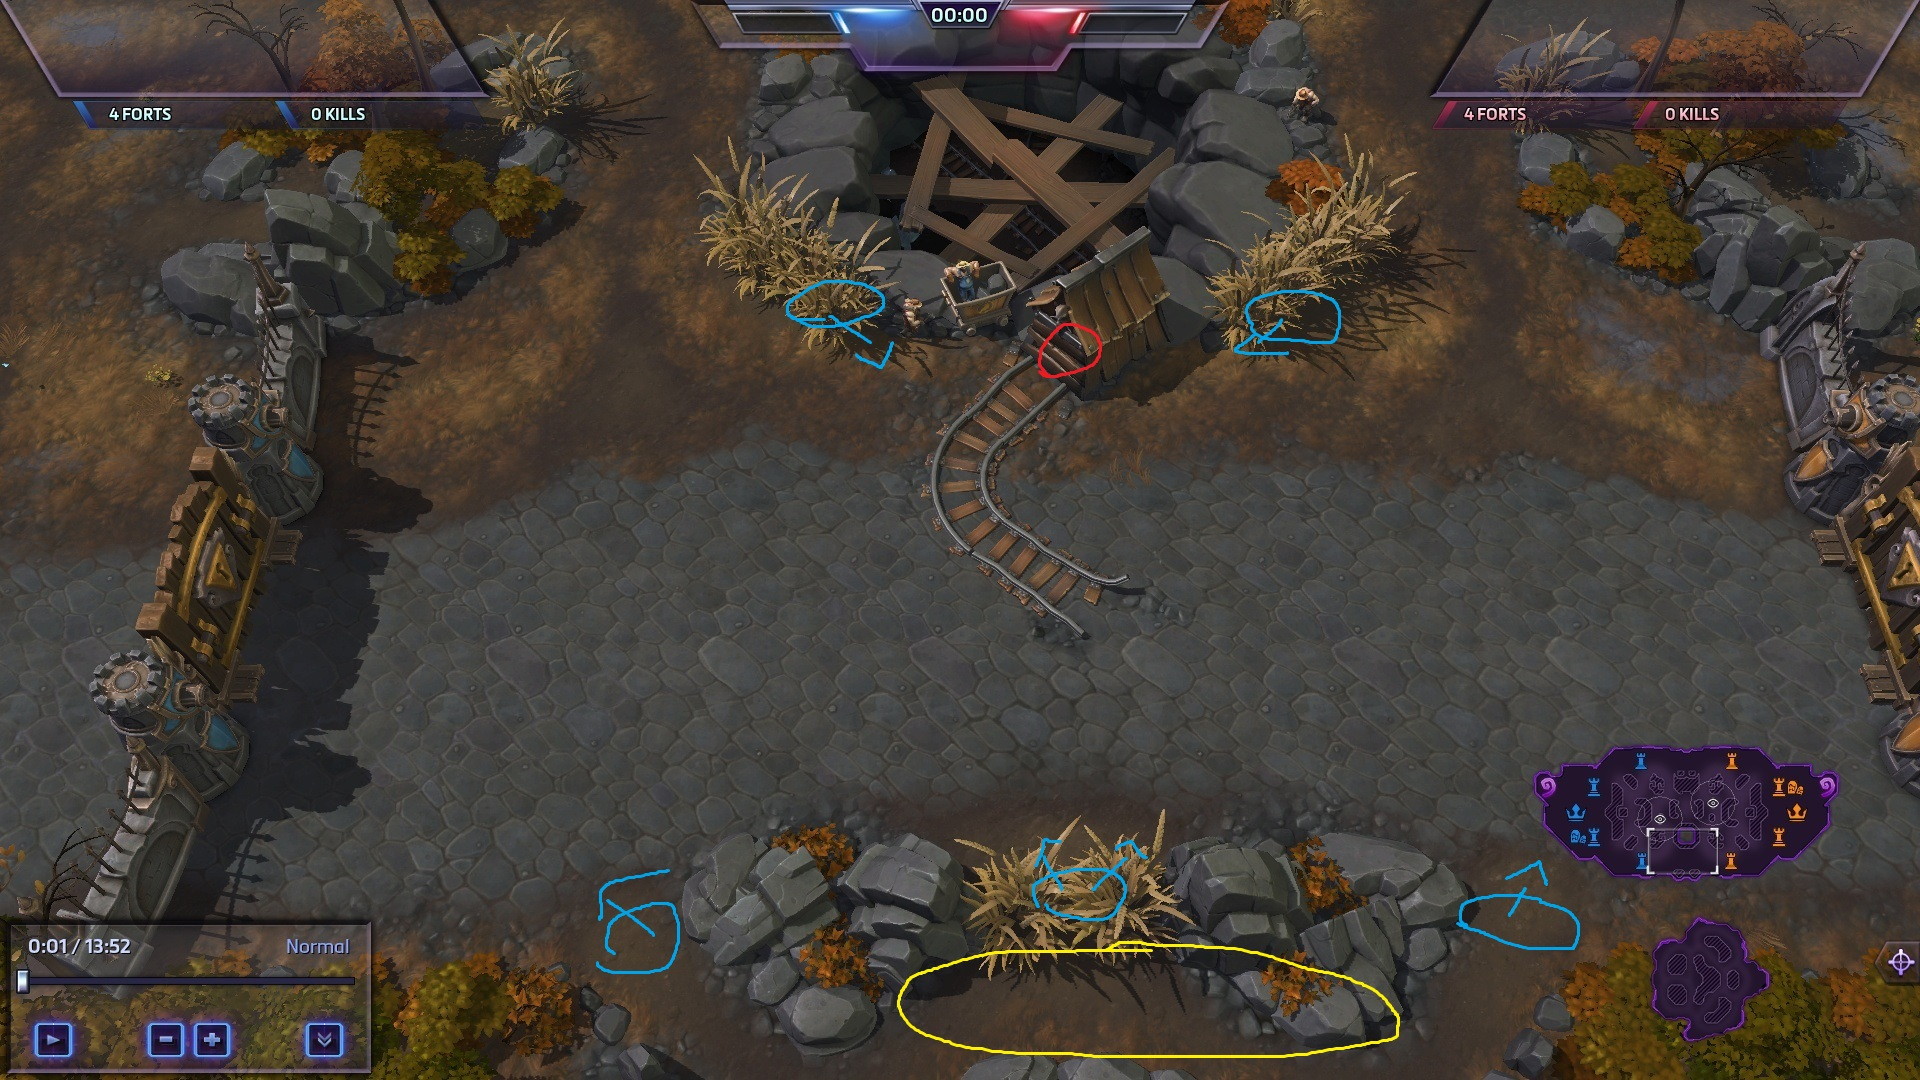 heroes of the storm 2.0 lane choice guide